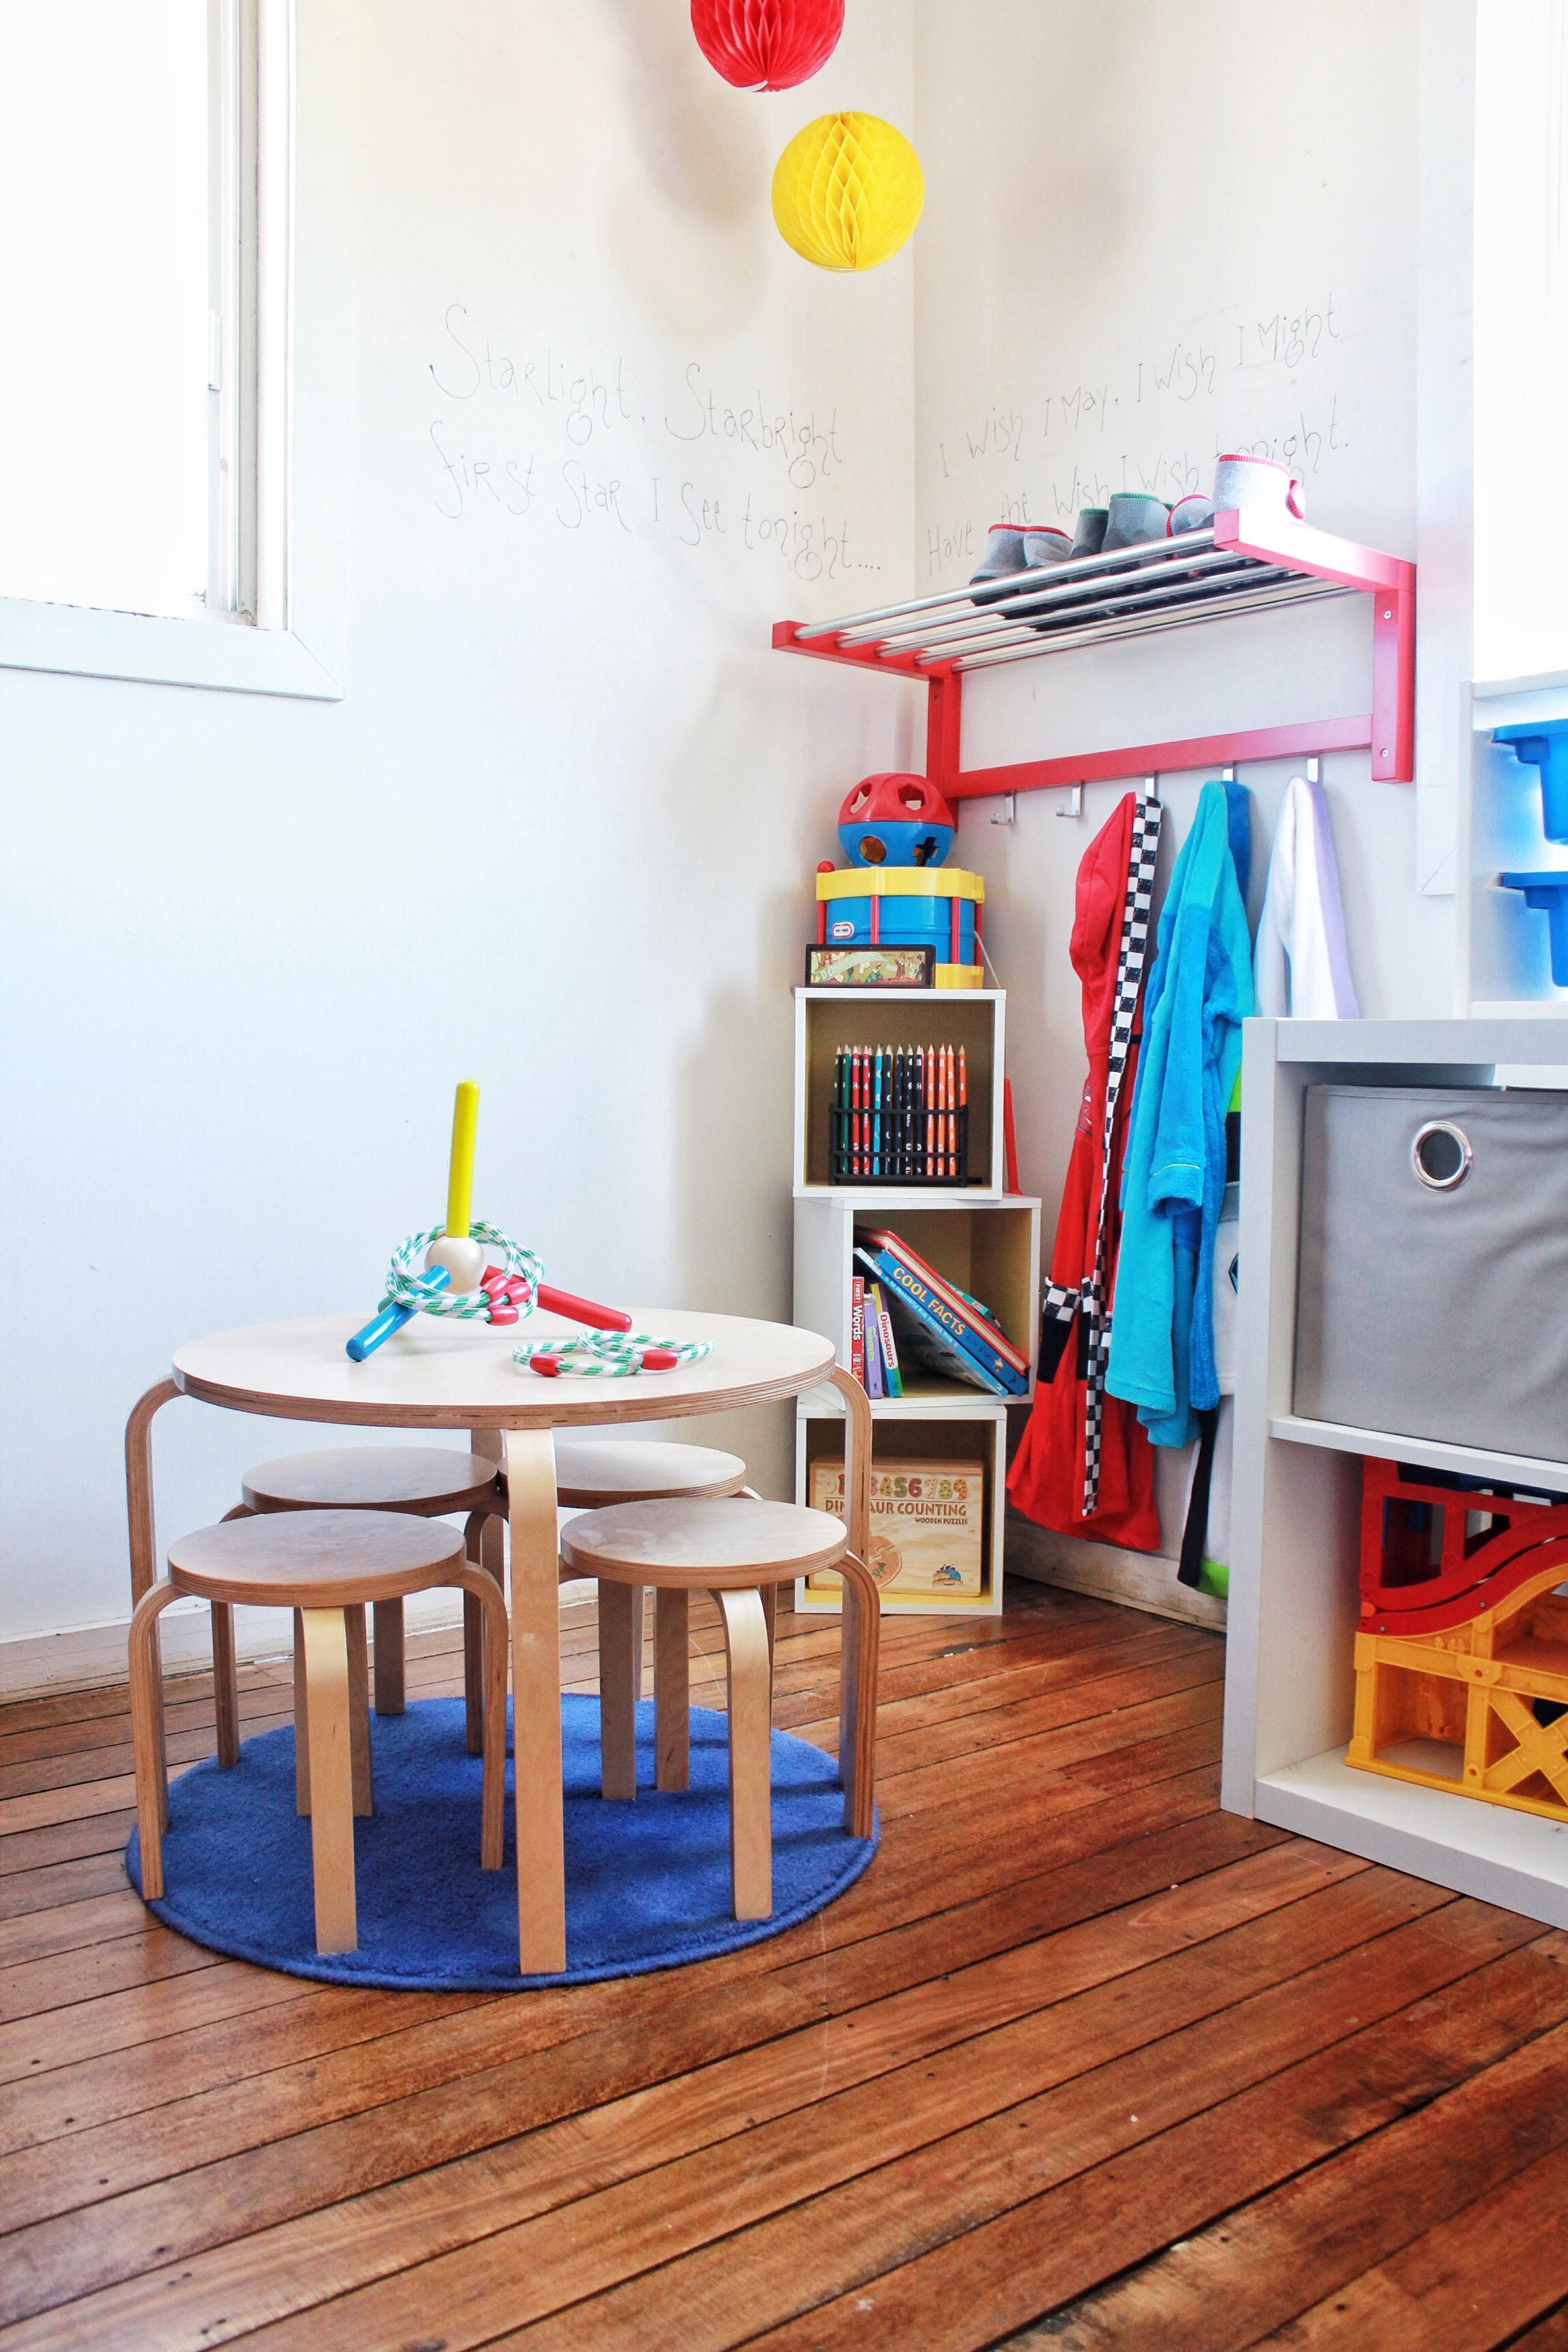 Kids Bedroom Furniture Ikea Mocka Table And Chairs Ikea Tjusig Coat Rack Boys Room